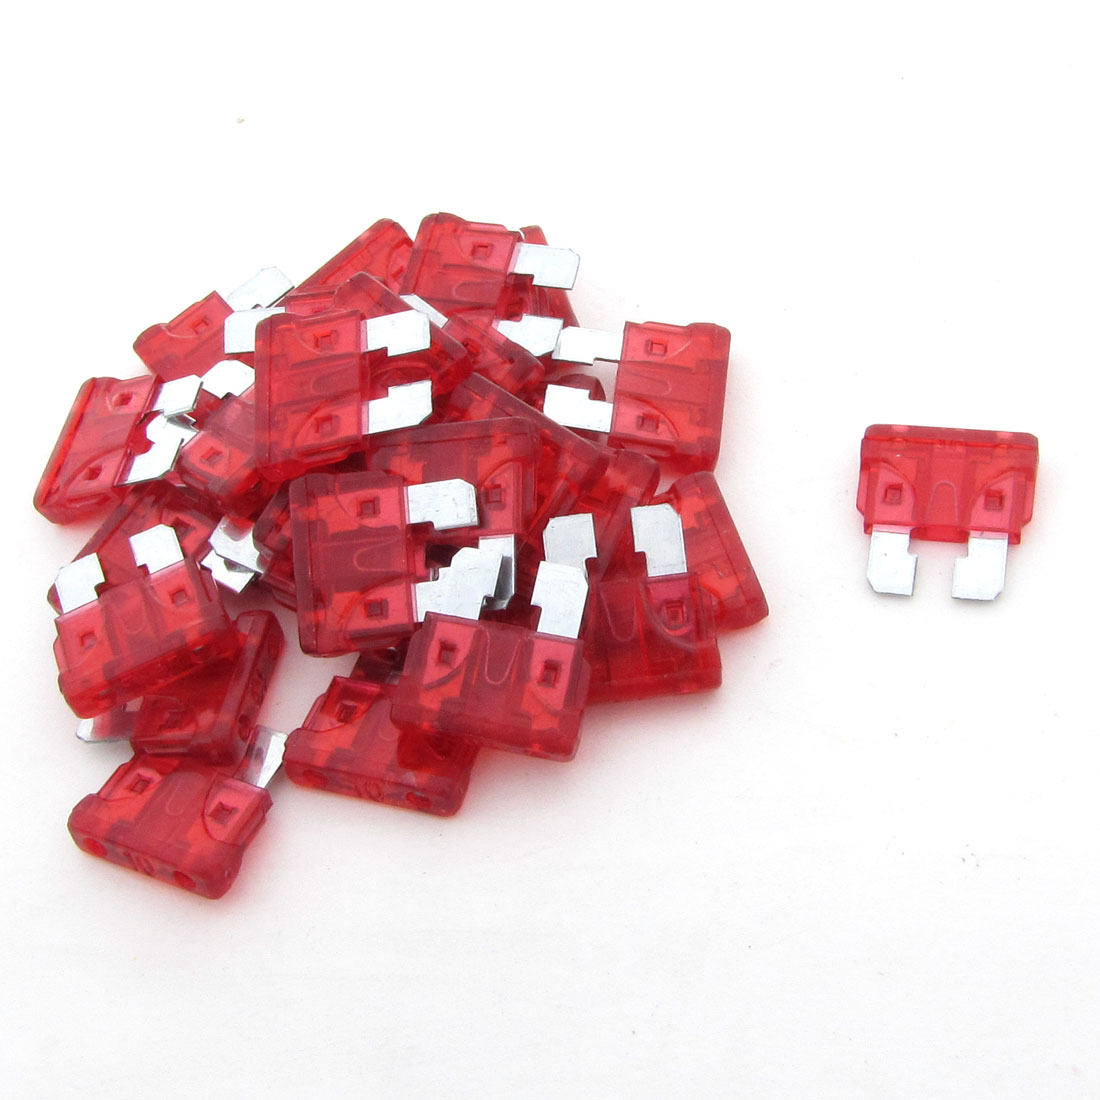 10A Car Truck Motorcycle Vehicle Auto Blade Fuse Red 30 Pcs